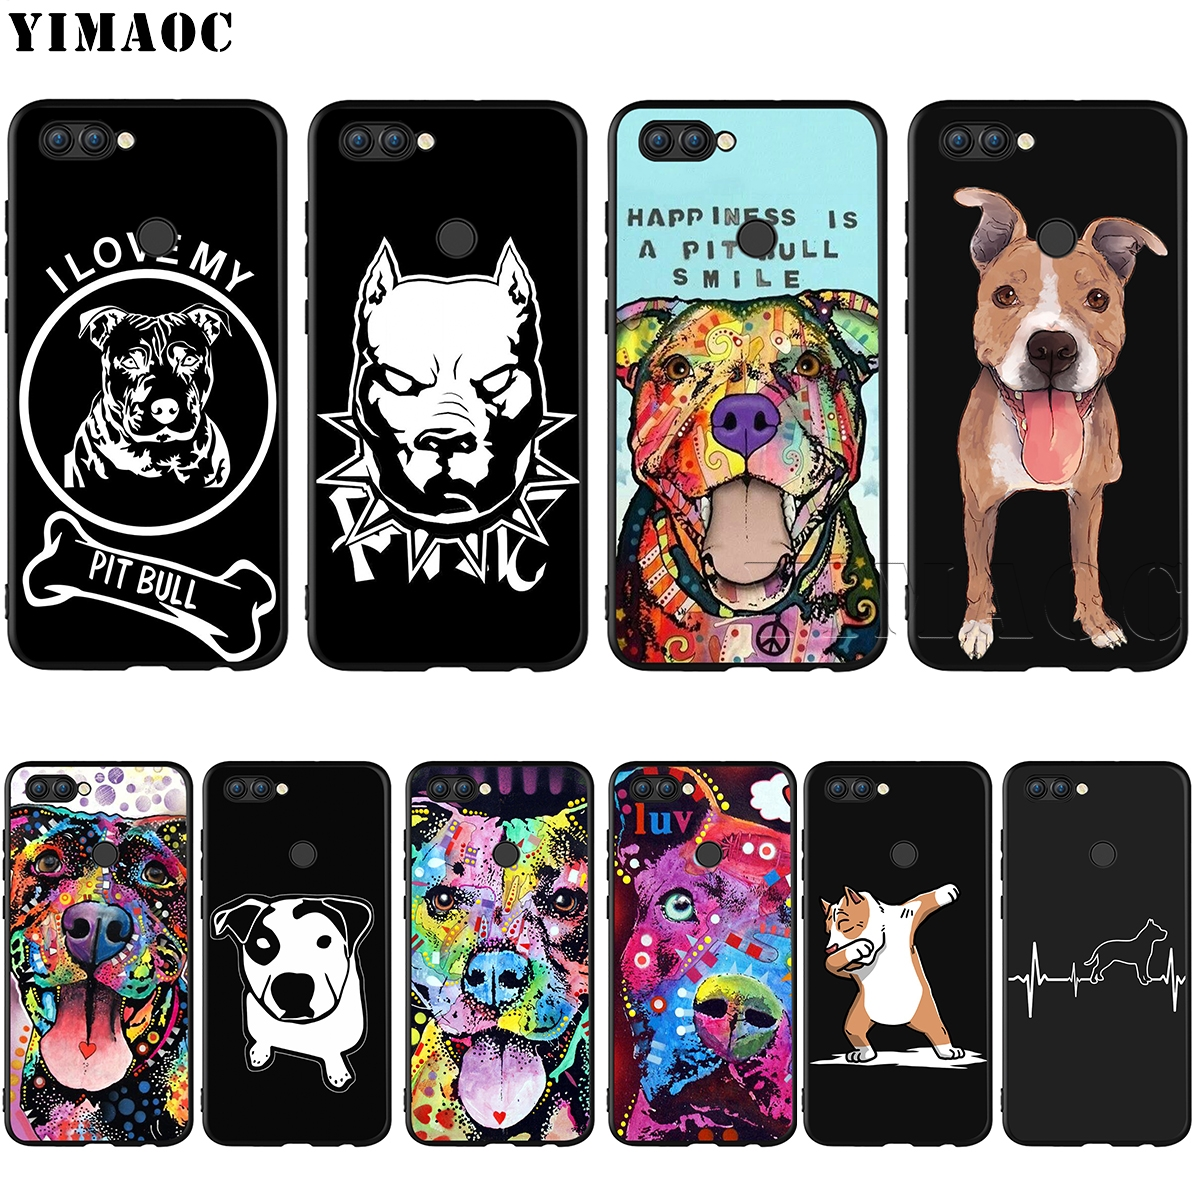 YIMAOC Pit Bull Pitbull Silicone Case for Huawei Honor Mate Y6 6A 8 9 10 P8 P9 P10 P20 P ...